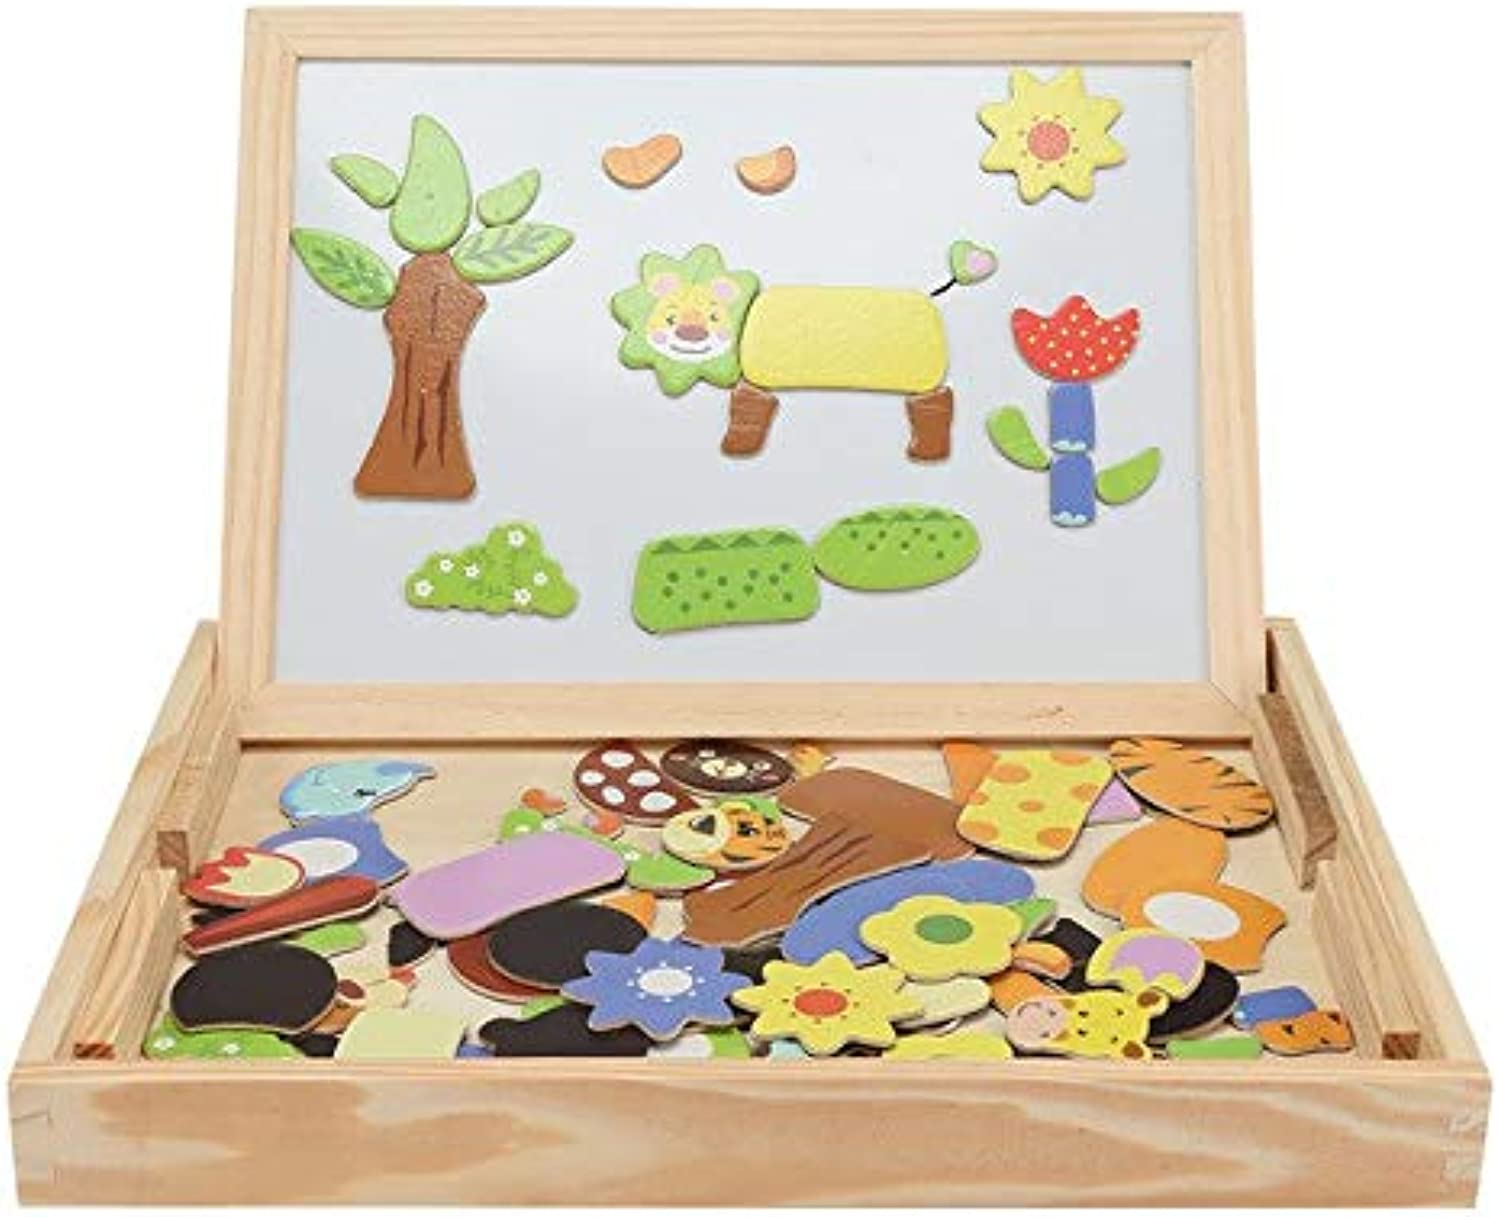 Laliva Wooden Magnetic Puzzle Kids DIY Jigsaw Drawing Board Educational Toy Develop Baby Hands-On Hand-Eye Coordination Cognitive Skill - (color  Multi a)